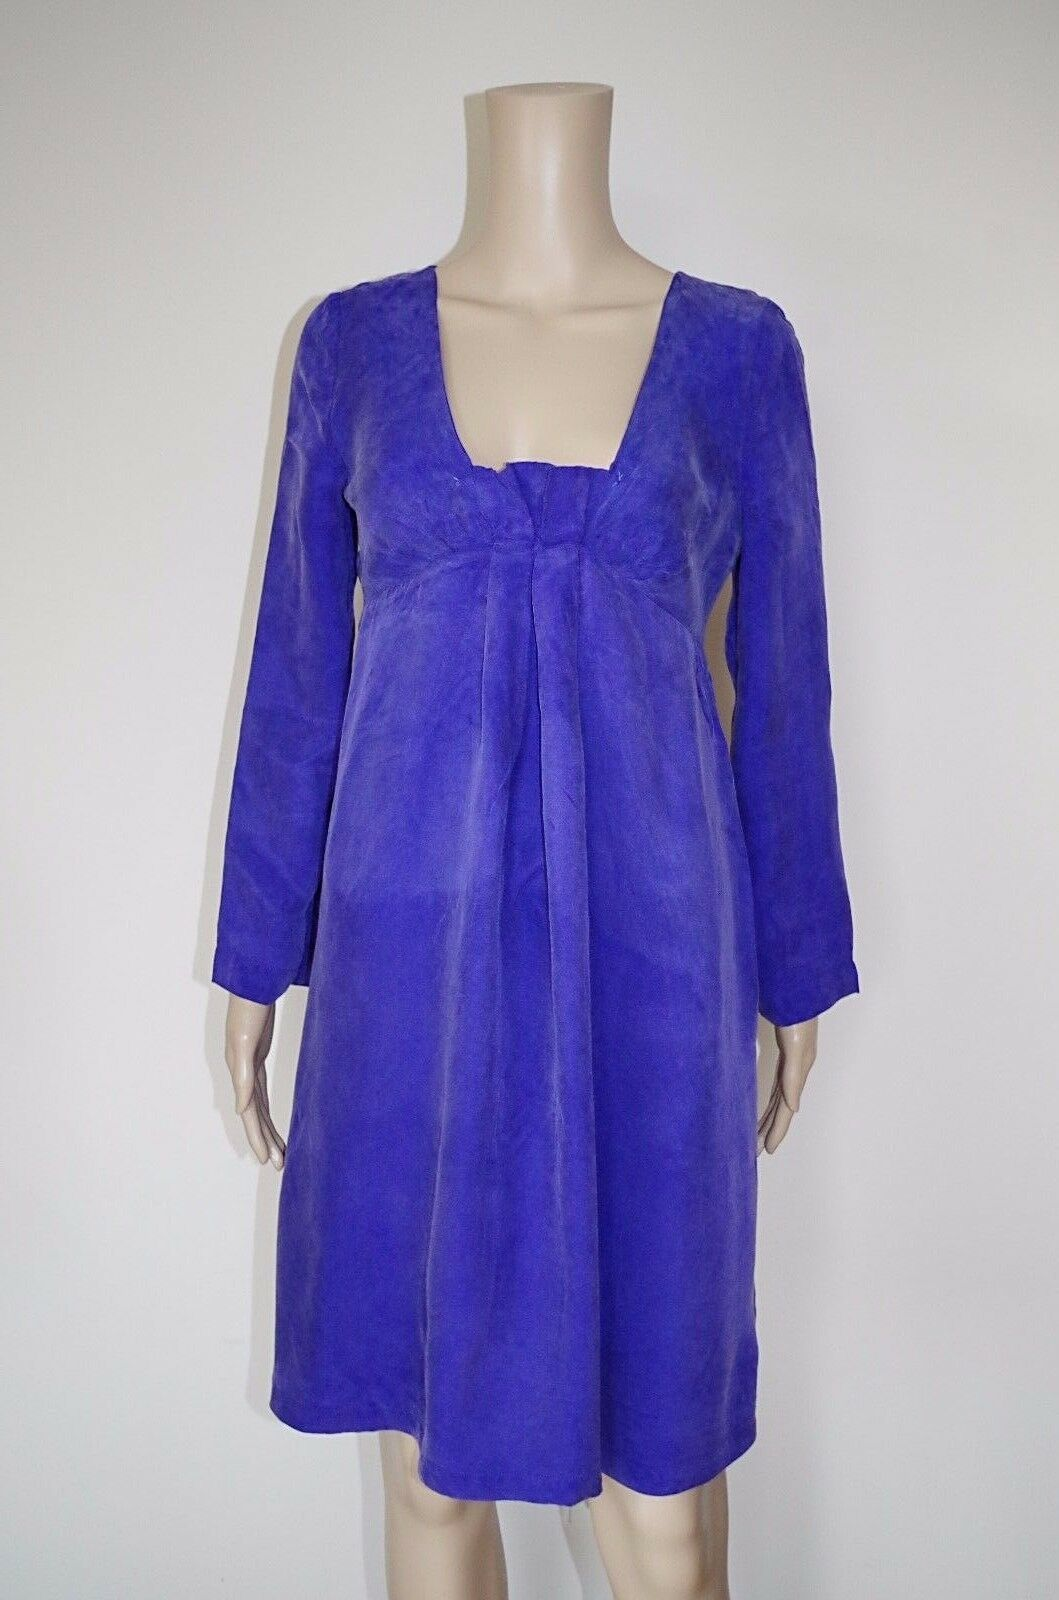 ARMANI JEANS US 4   40 EU WOMENS DRESS CUPRO BUBBLE PURPLE LOOSE FIT PREGNANCY